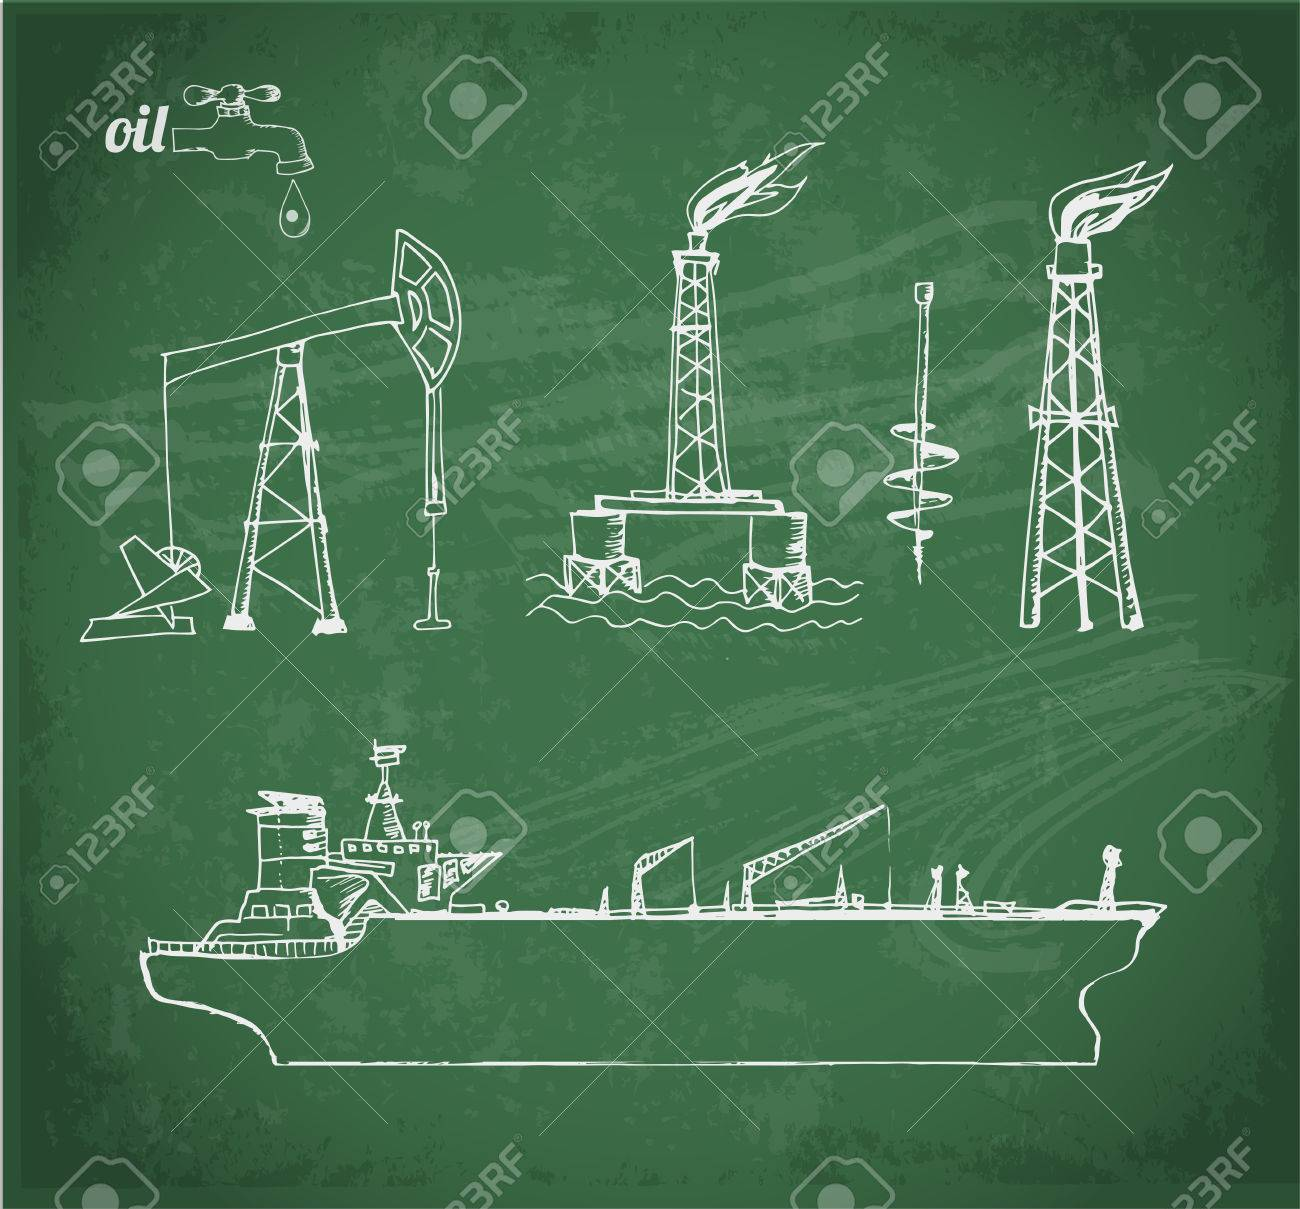 Sketches Of Oil Rigs, Offs Drilling Platform And Oil Tanker ...